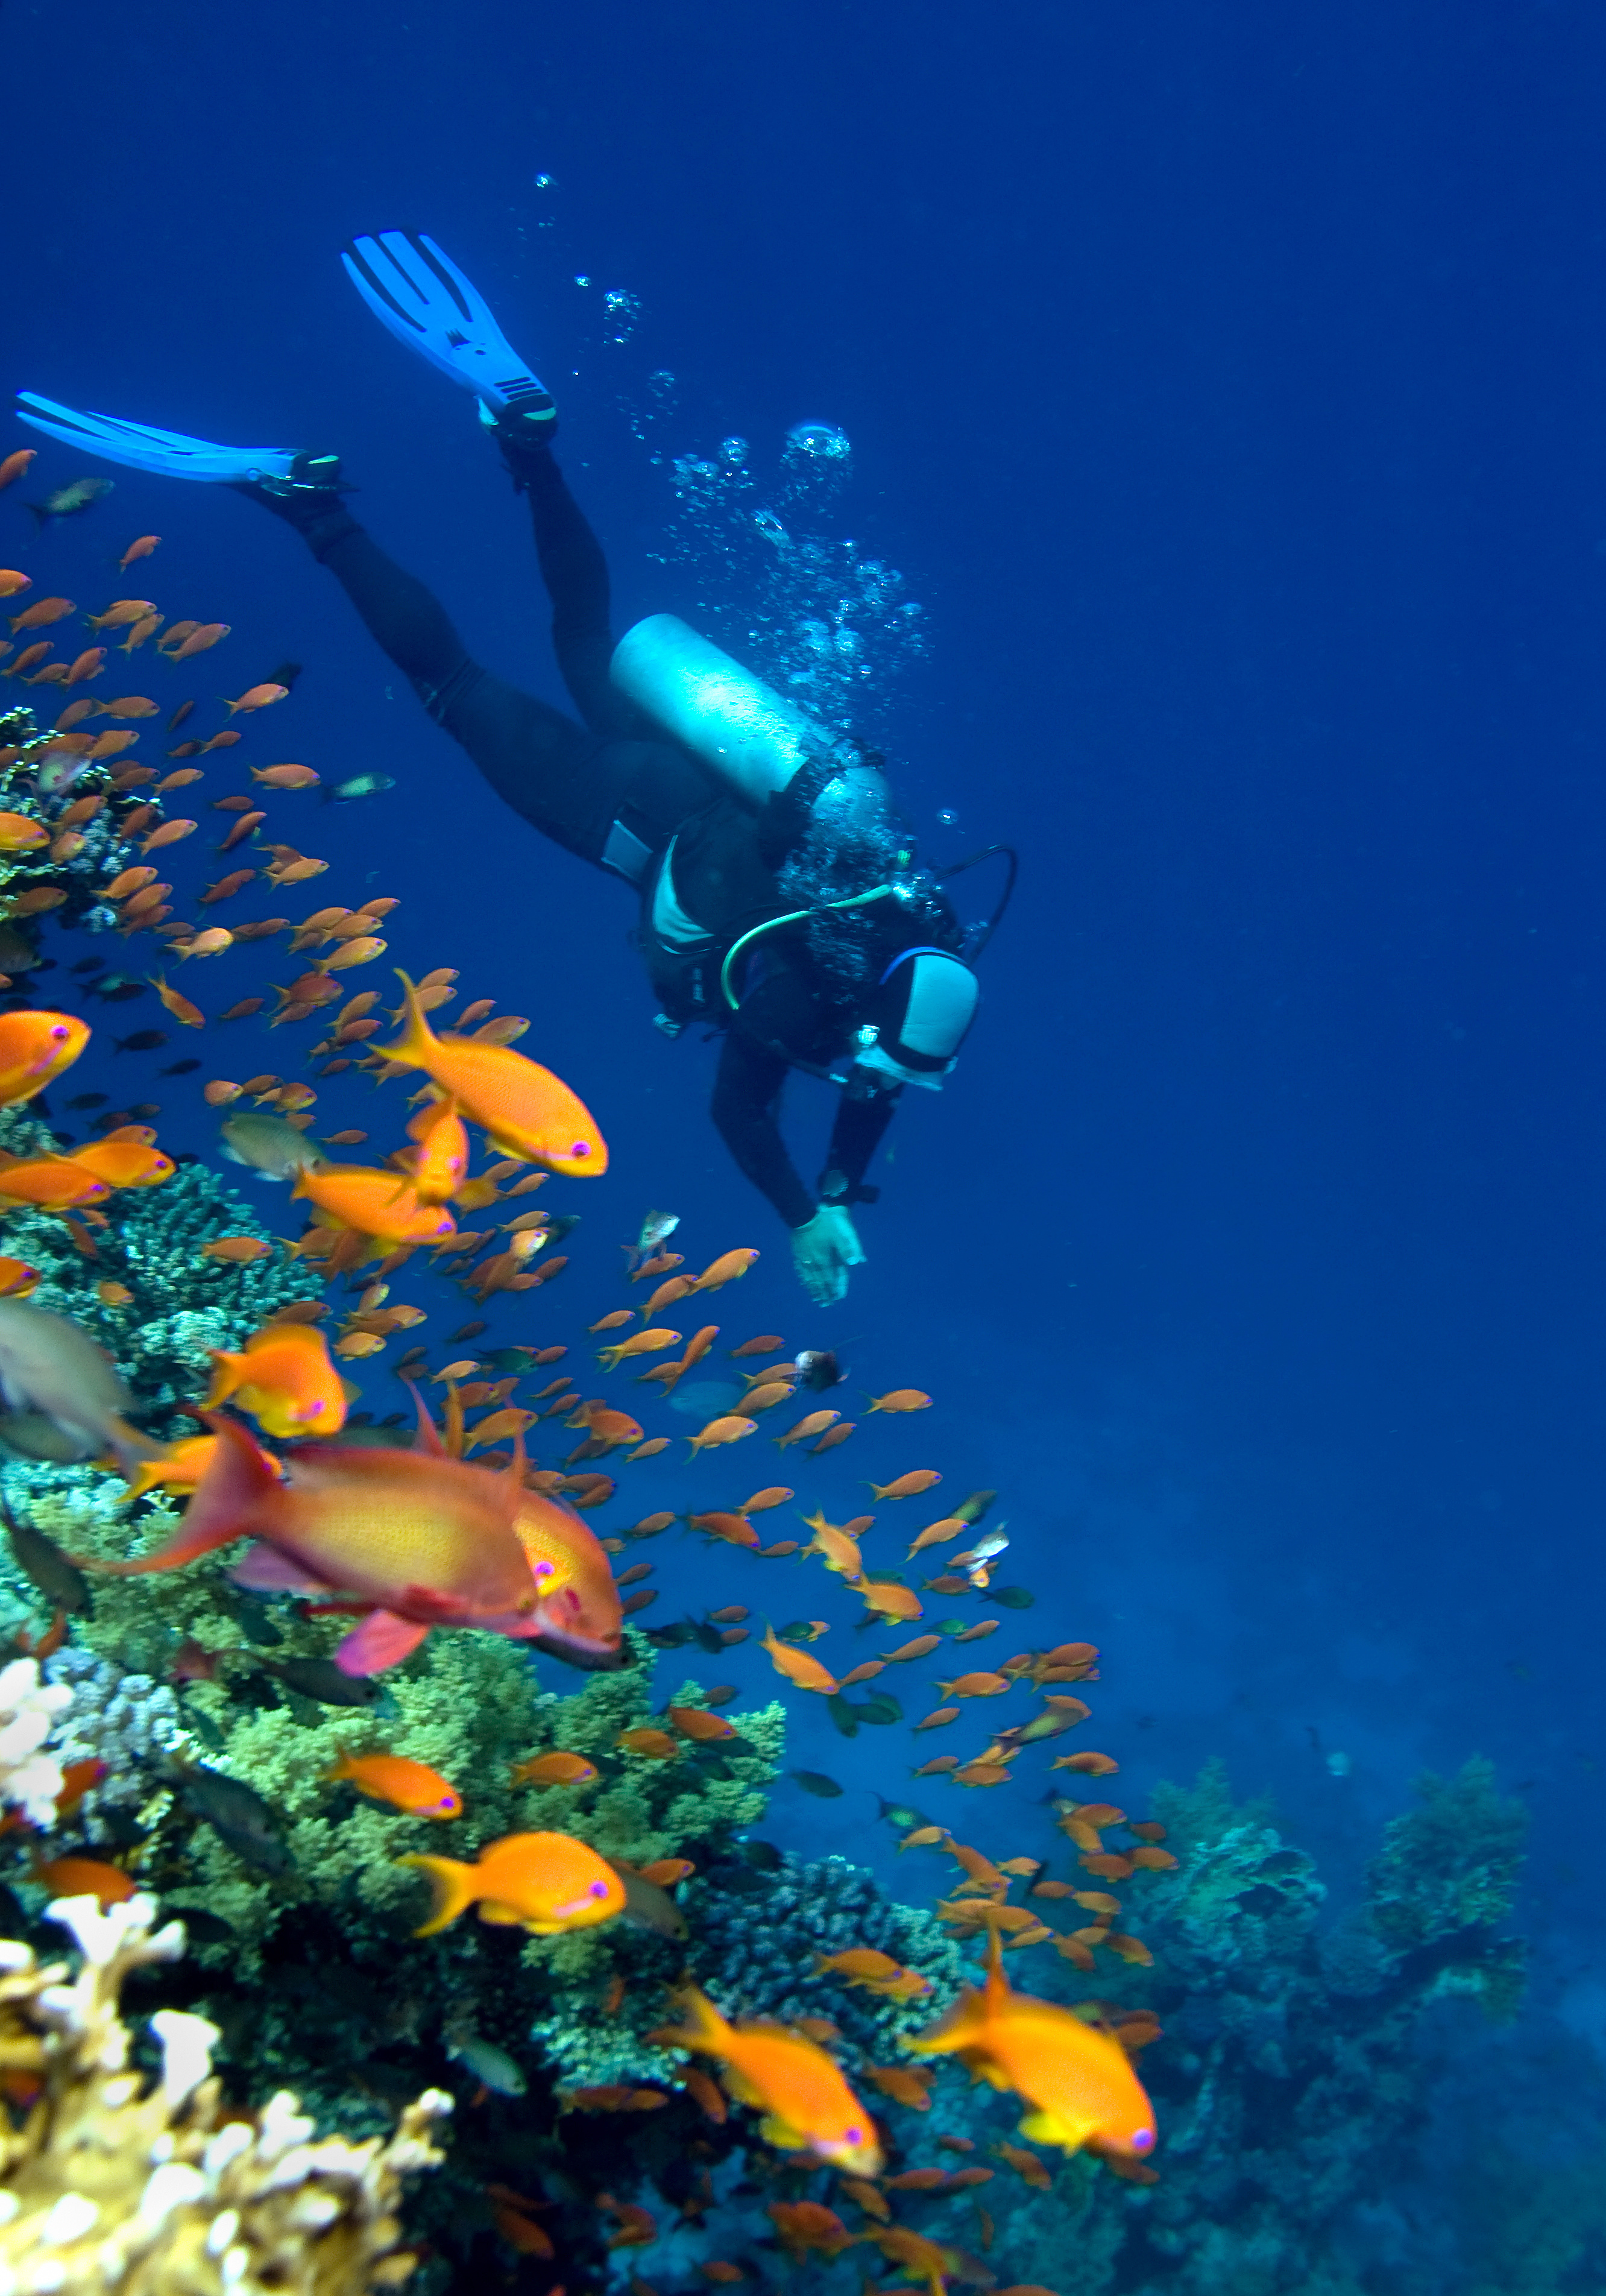 Corals, fishes and diver